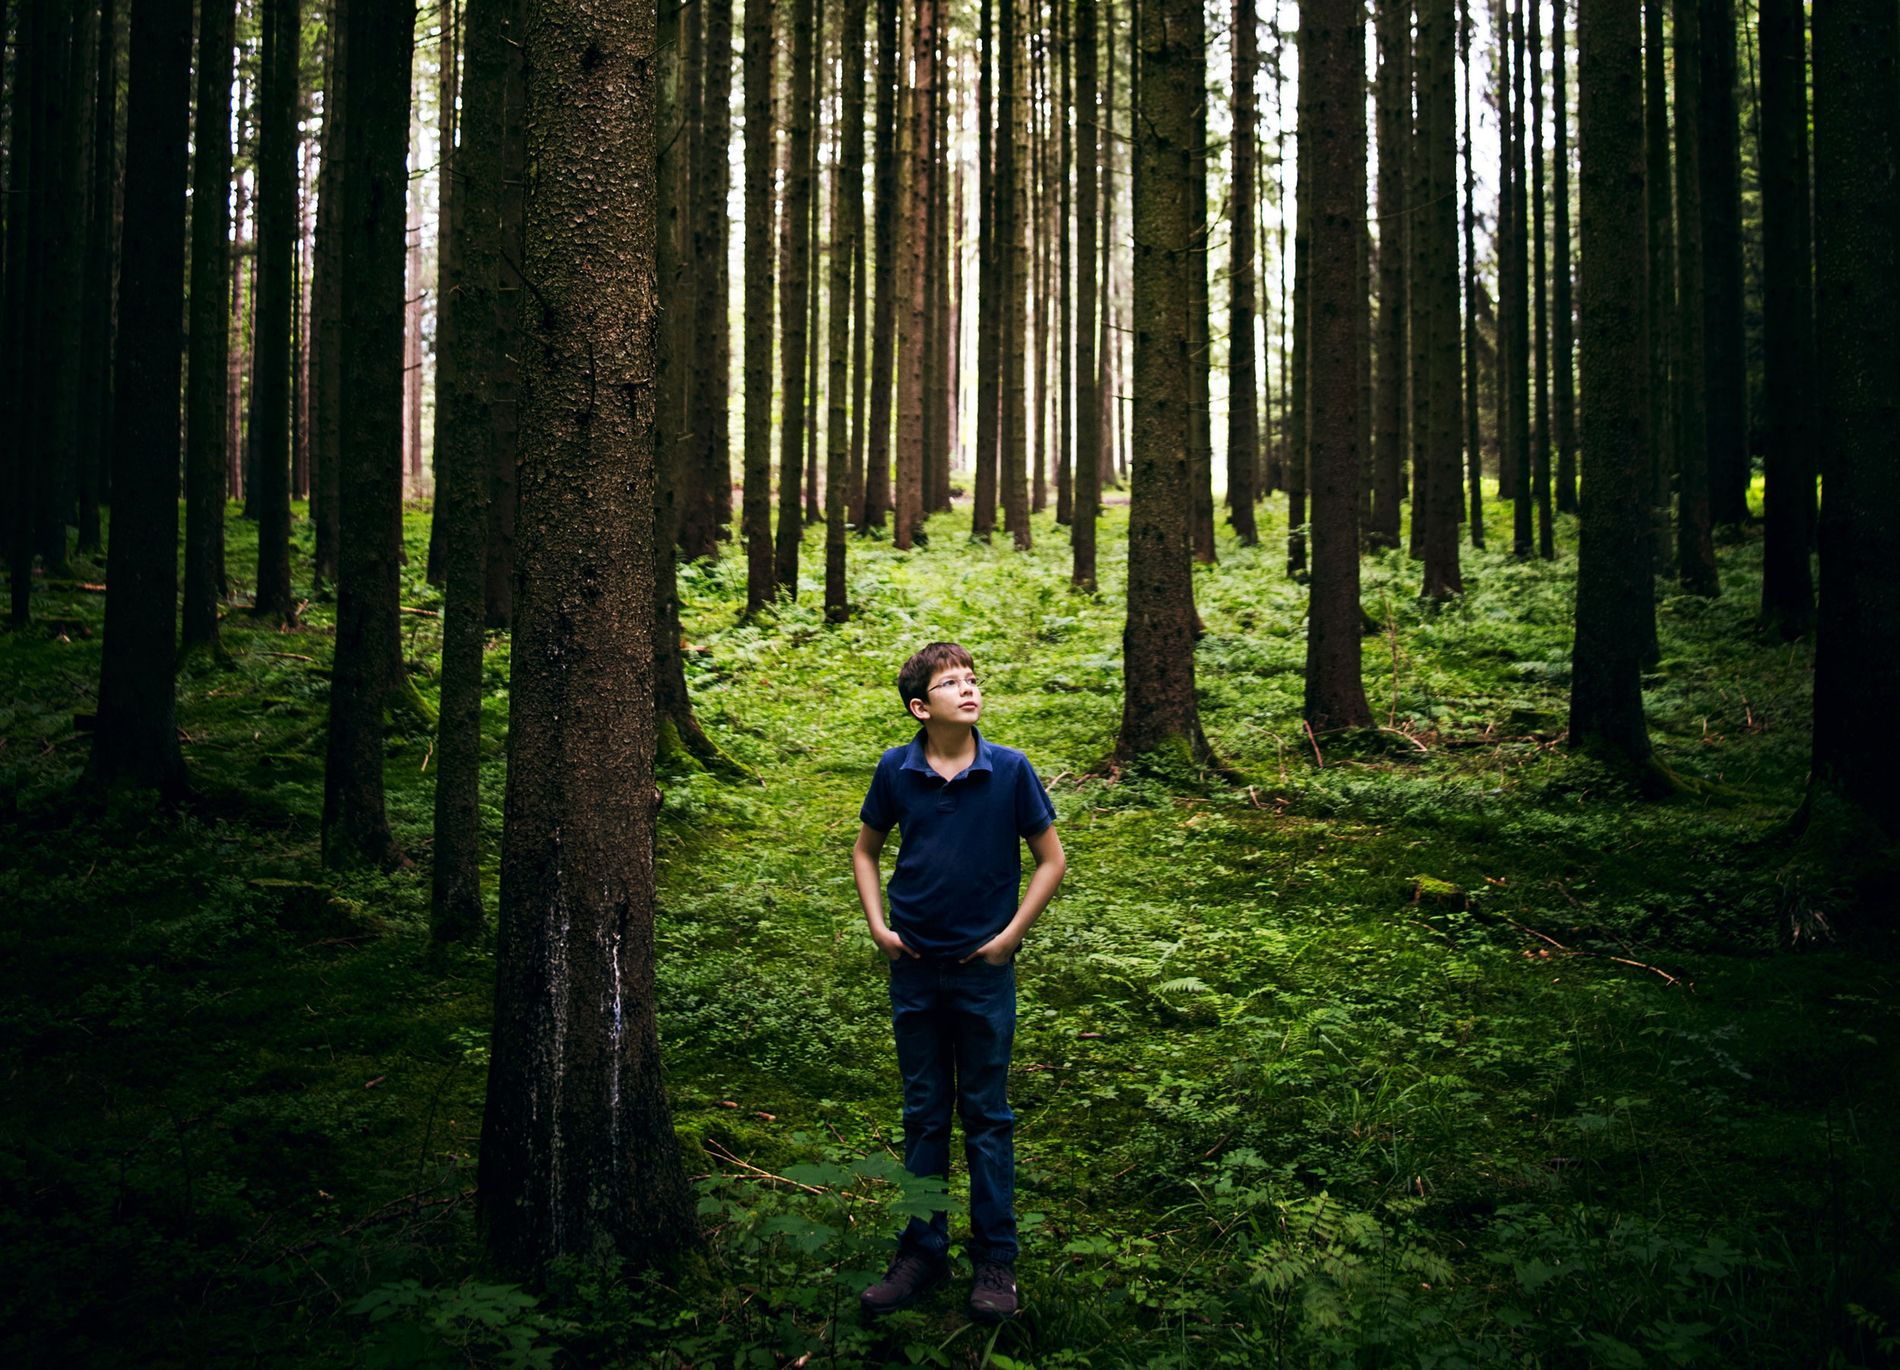 Seen in August 2011, Felix Finkbeiner has made it his life's goal to plant trees. And ...